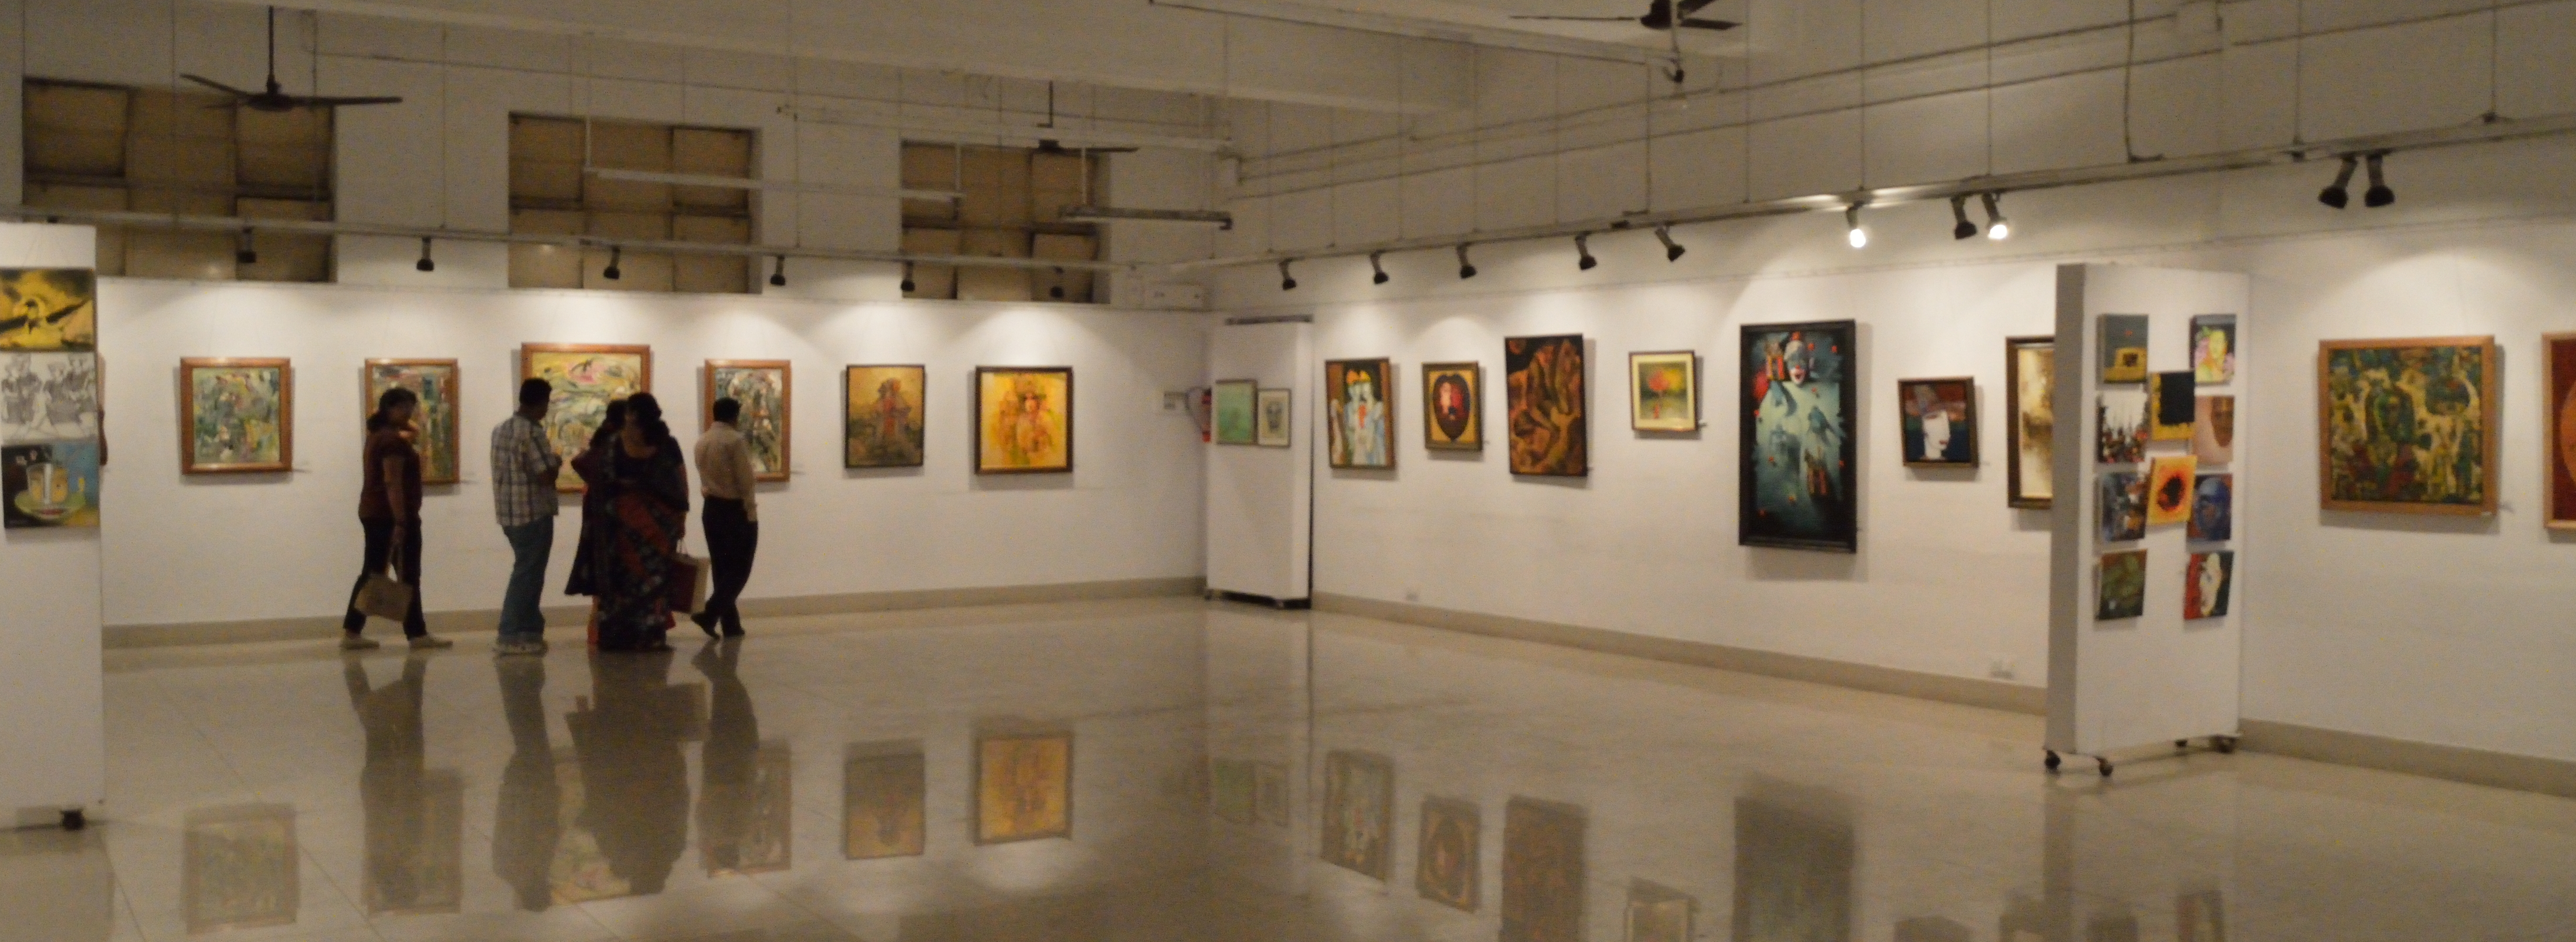 Artists_Circle_-_Painting_Exhibition_-_Academy_of_Fine_Arts_-_Kolkata_2013-02-08_4570